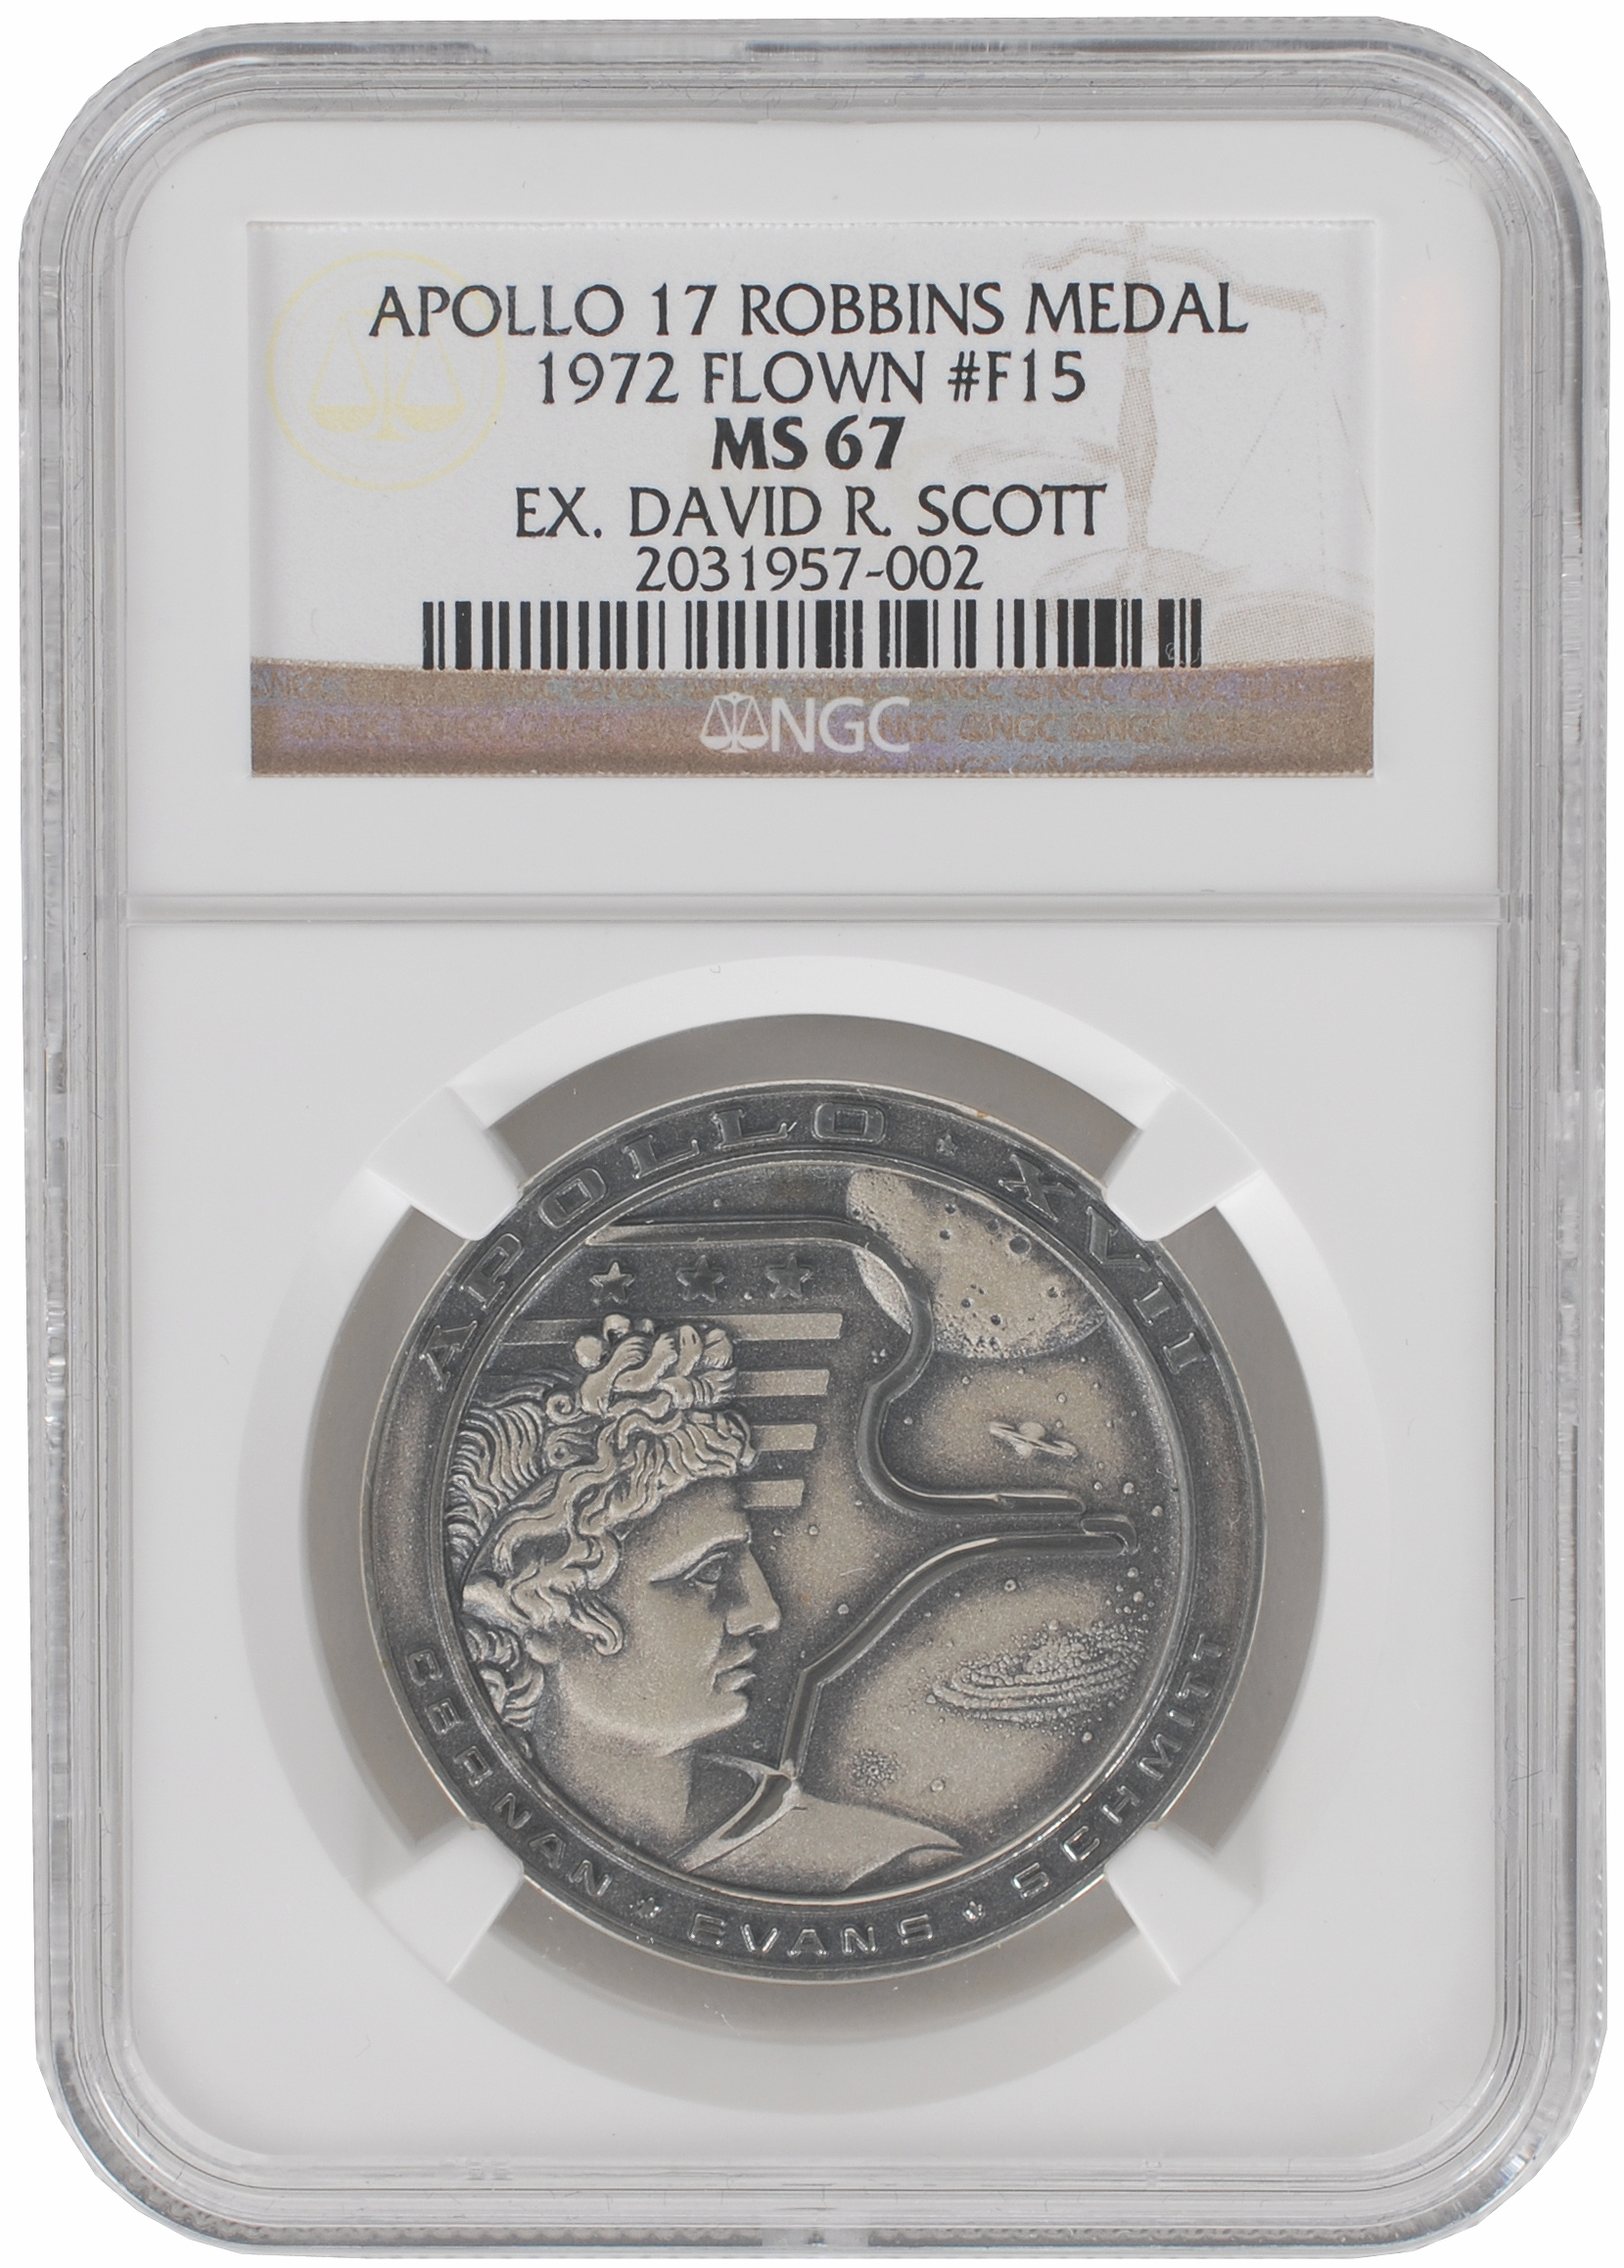 A space-flown Apollo 17 Robbins medal owned by Dave Scott, commander of Apollo 15 and the seventh man to walk on the moon. RR Auction sold it in September 2016 for $68,750--a record for a Robbins medal.